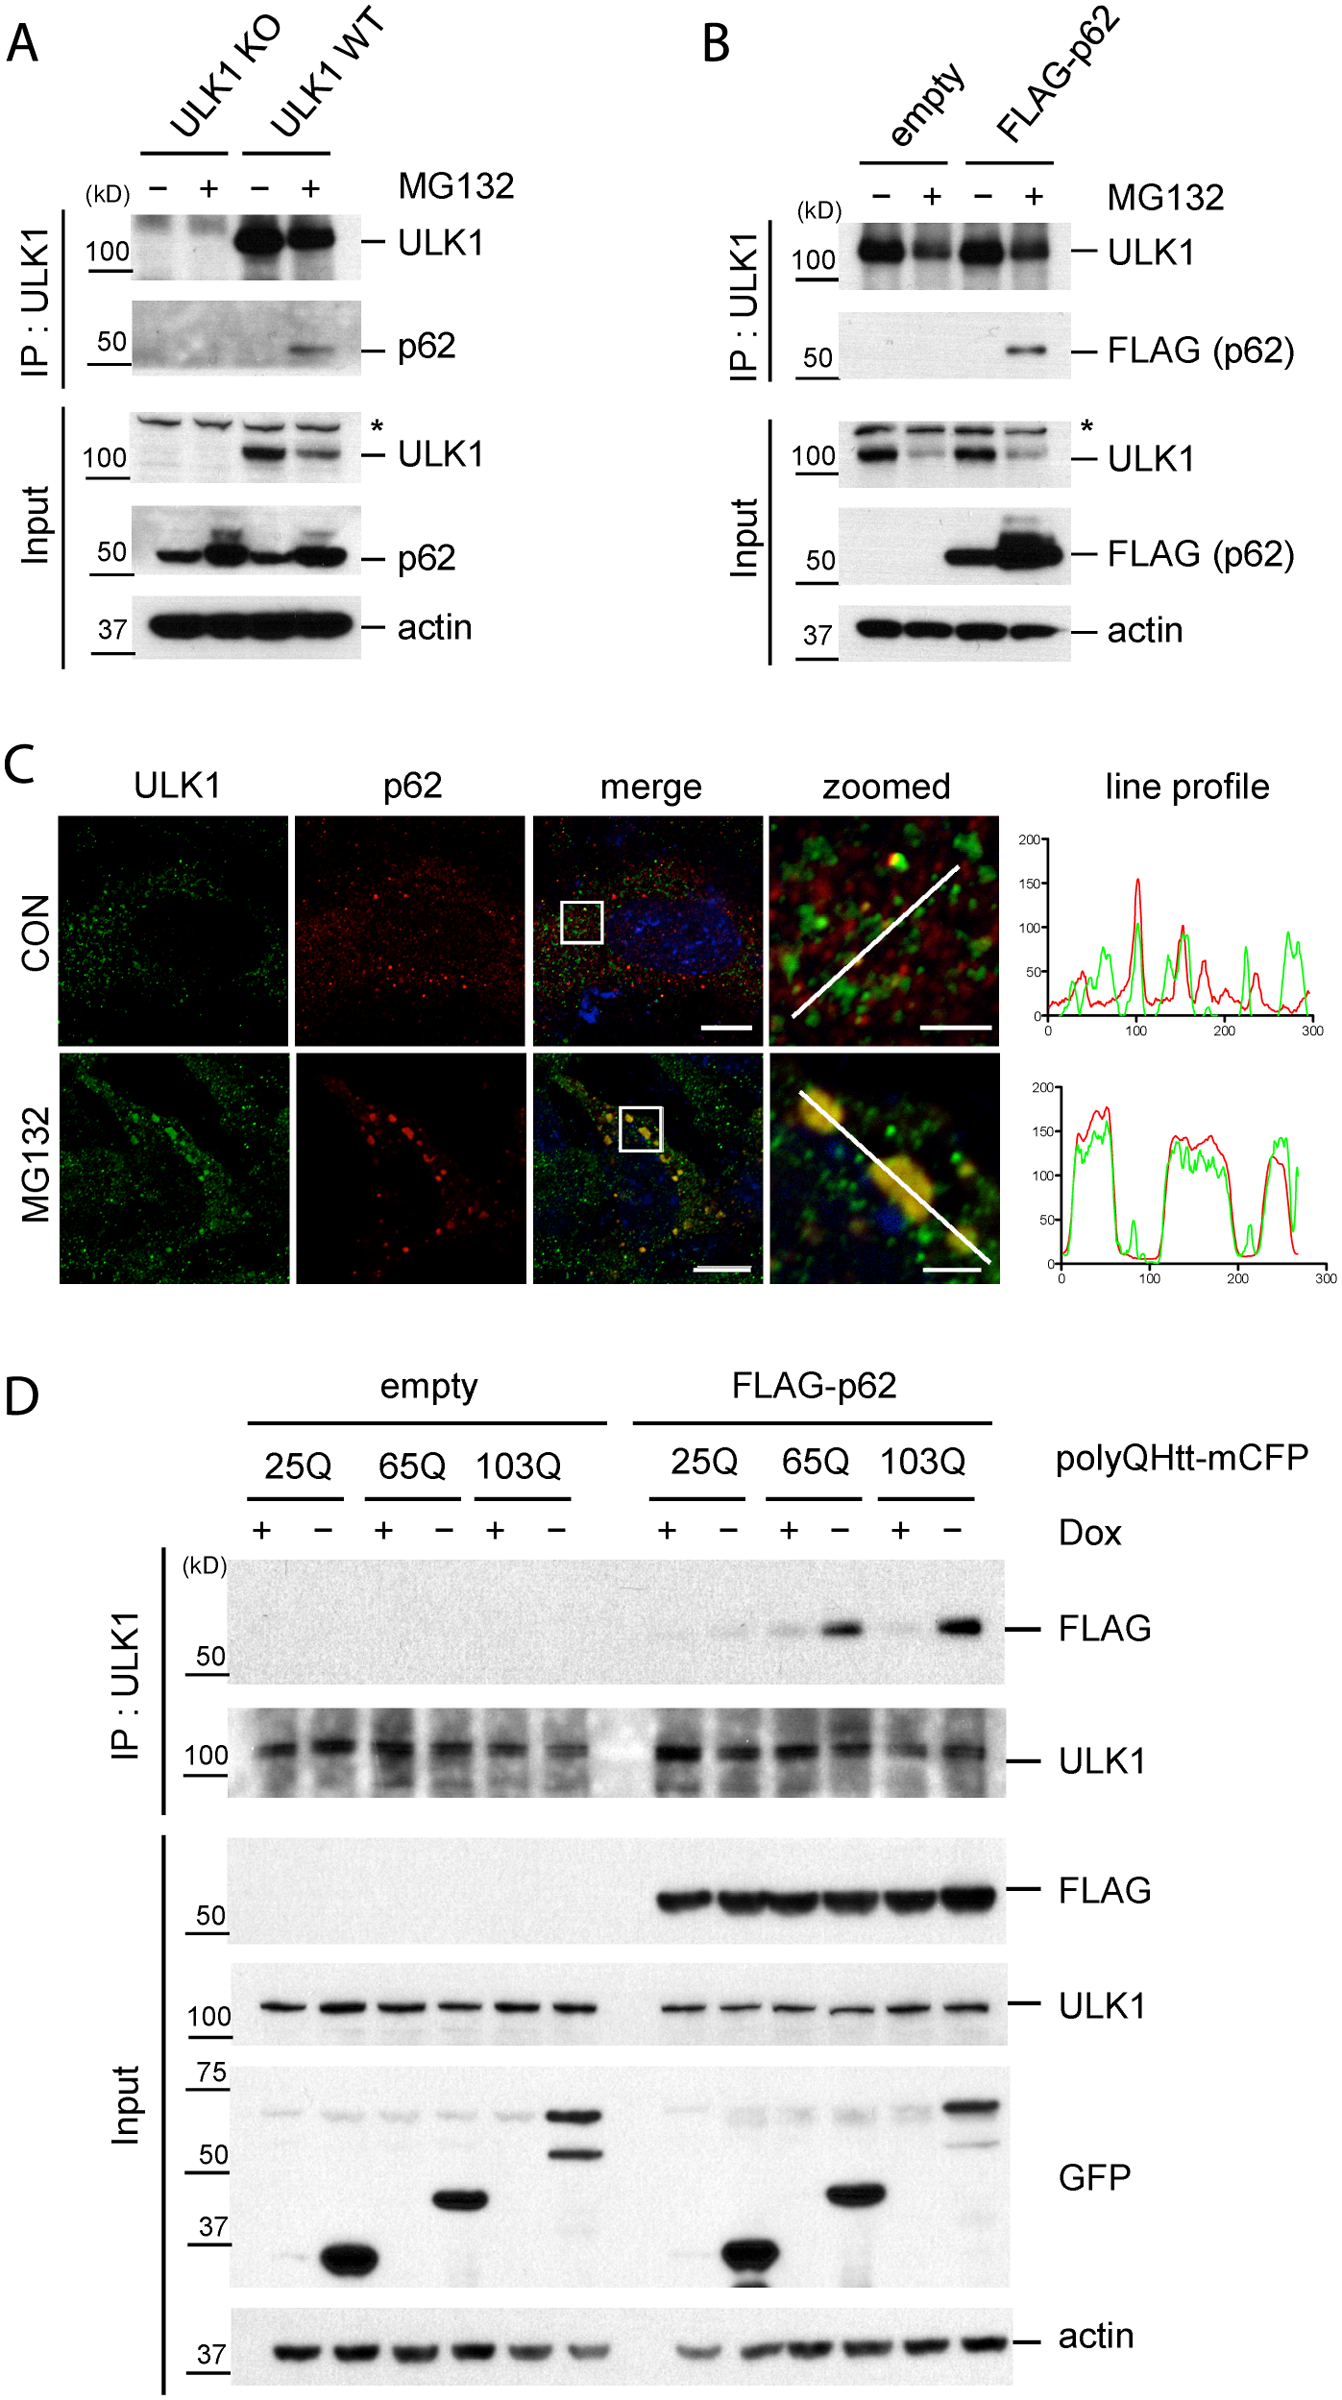 Accumulation of protein aggregates induces the interaction between ULK1 and p62.